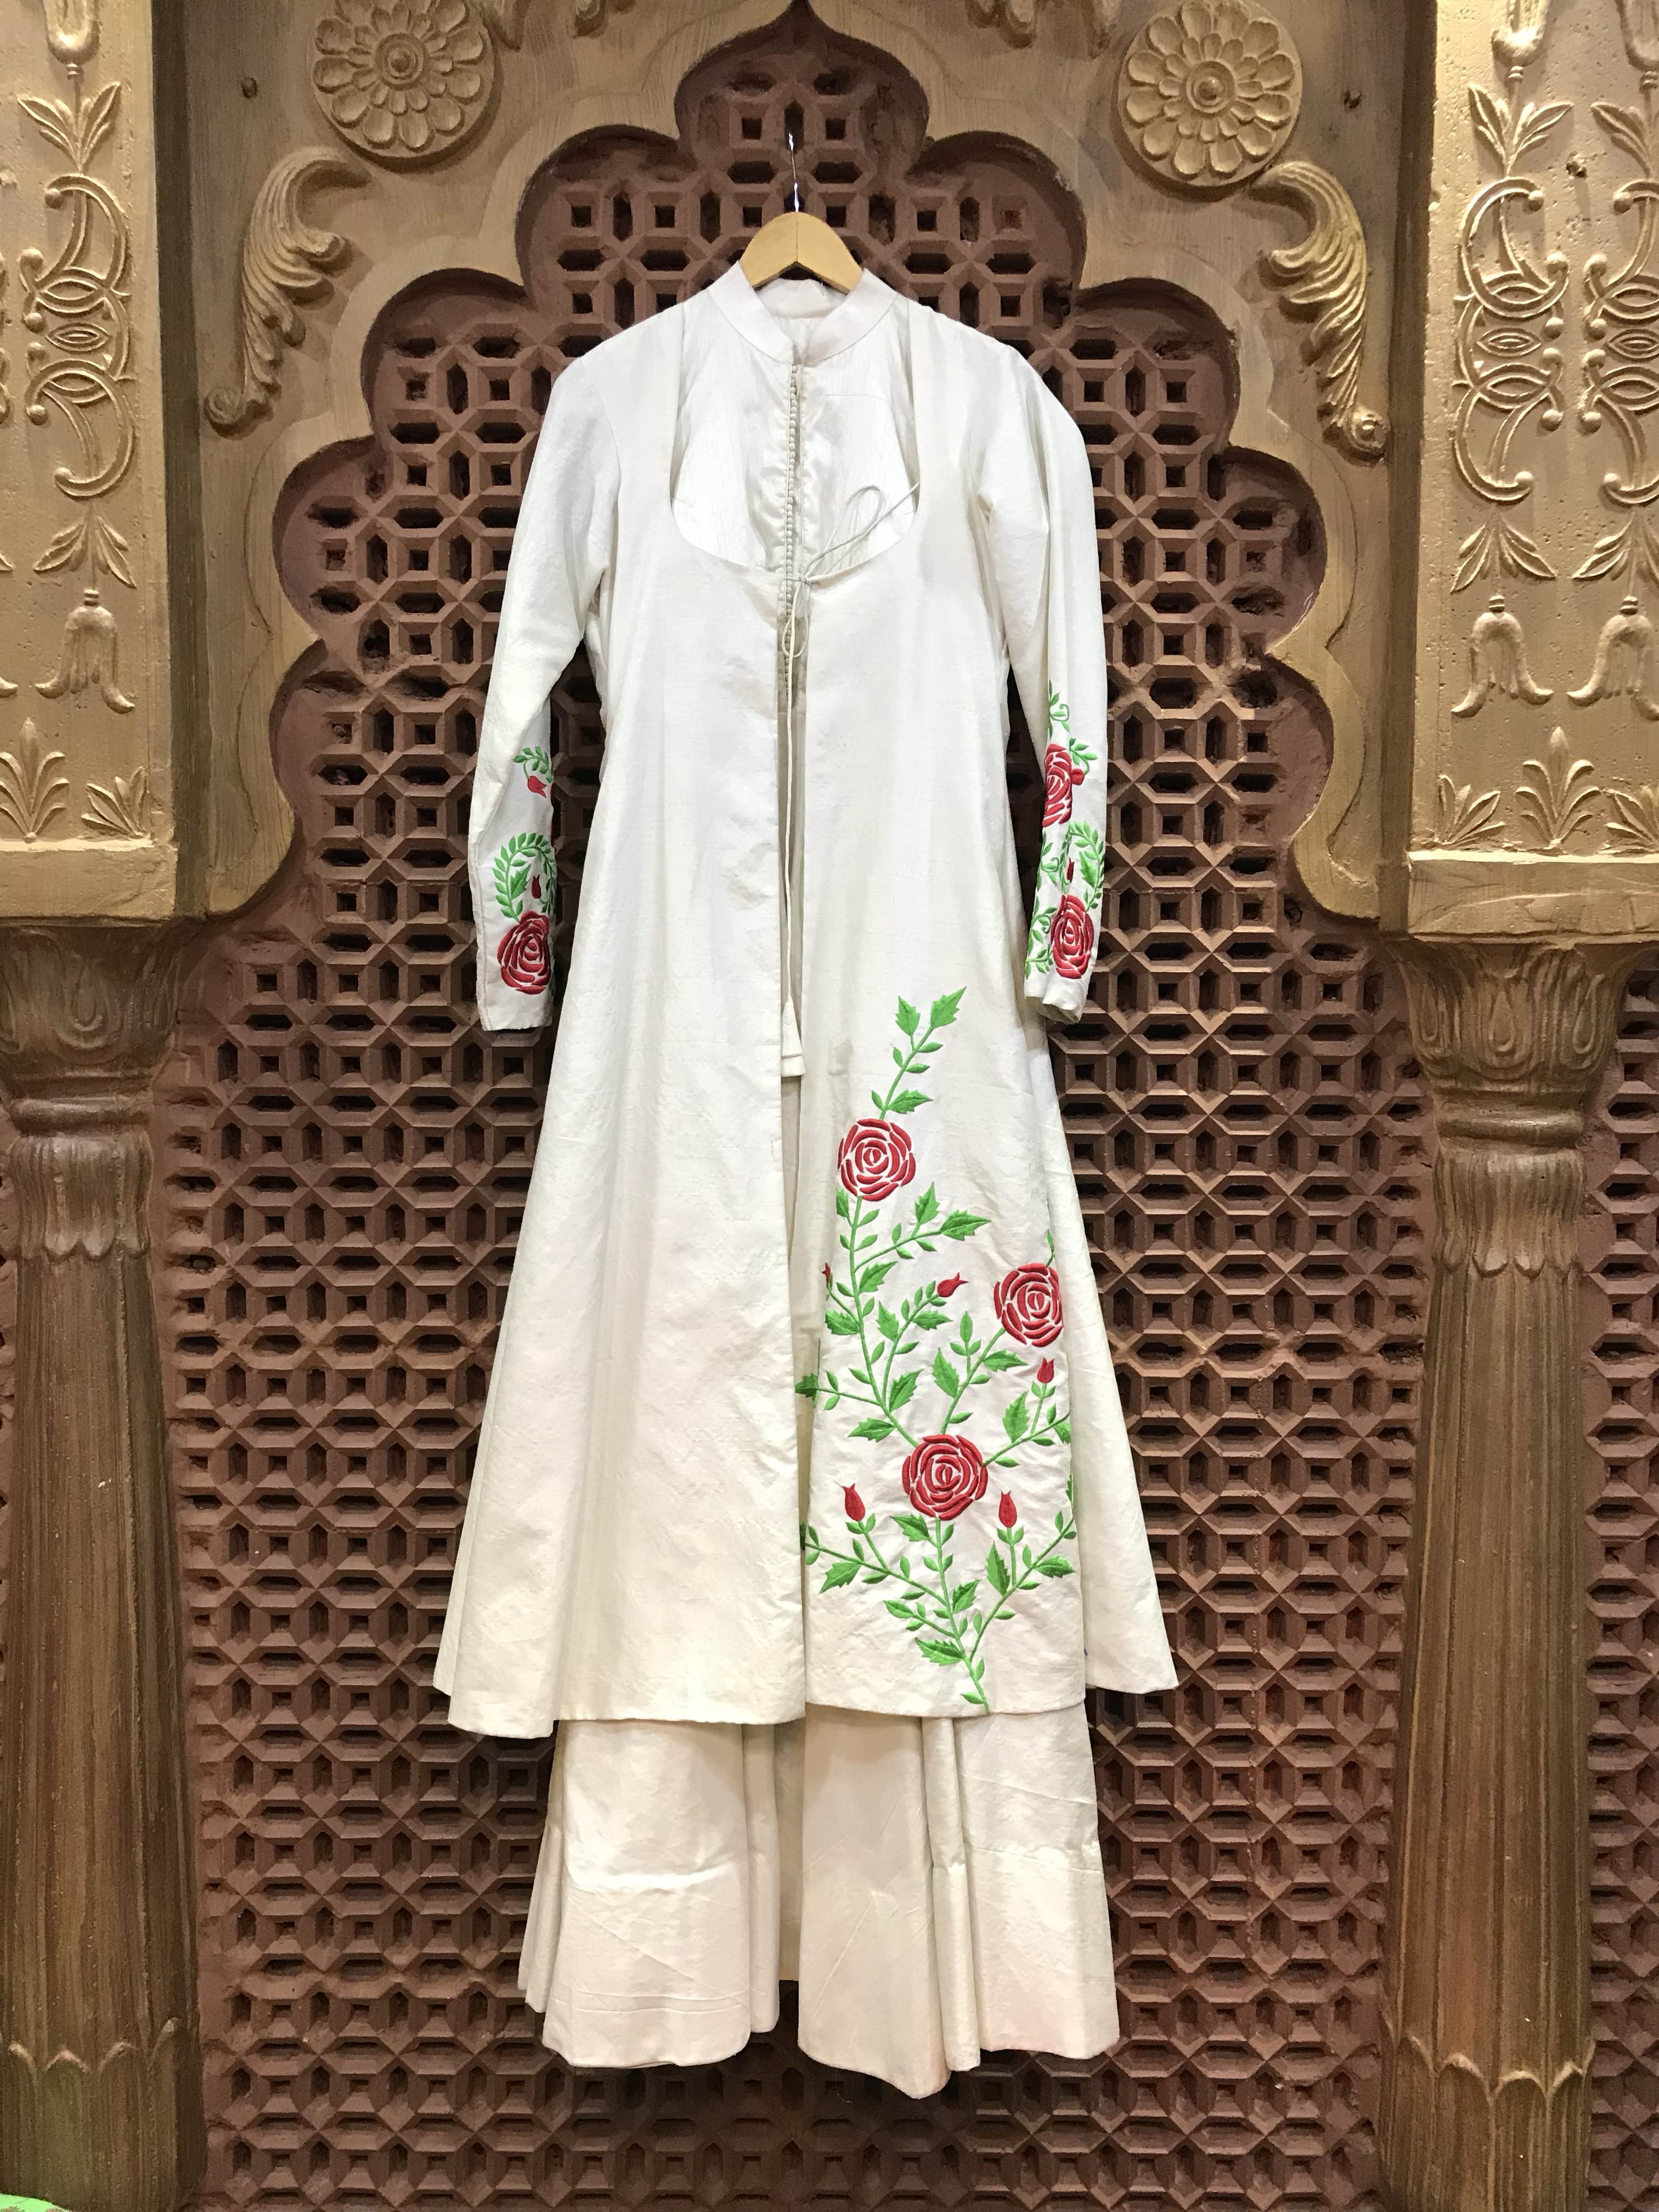 Designer Wear Cum Traditional Ethnic Wear This beautiful handcrafted gown cum indowestern designer off white traditional jacket pattern thread work all over the front jacket flap with sleeves and back also crafted with beautiful thread work and a simple elegant flailed gown with a jacket pattern over it make it look more sophisticated designer cum Traditional Ethnic wear